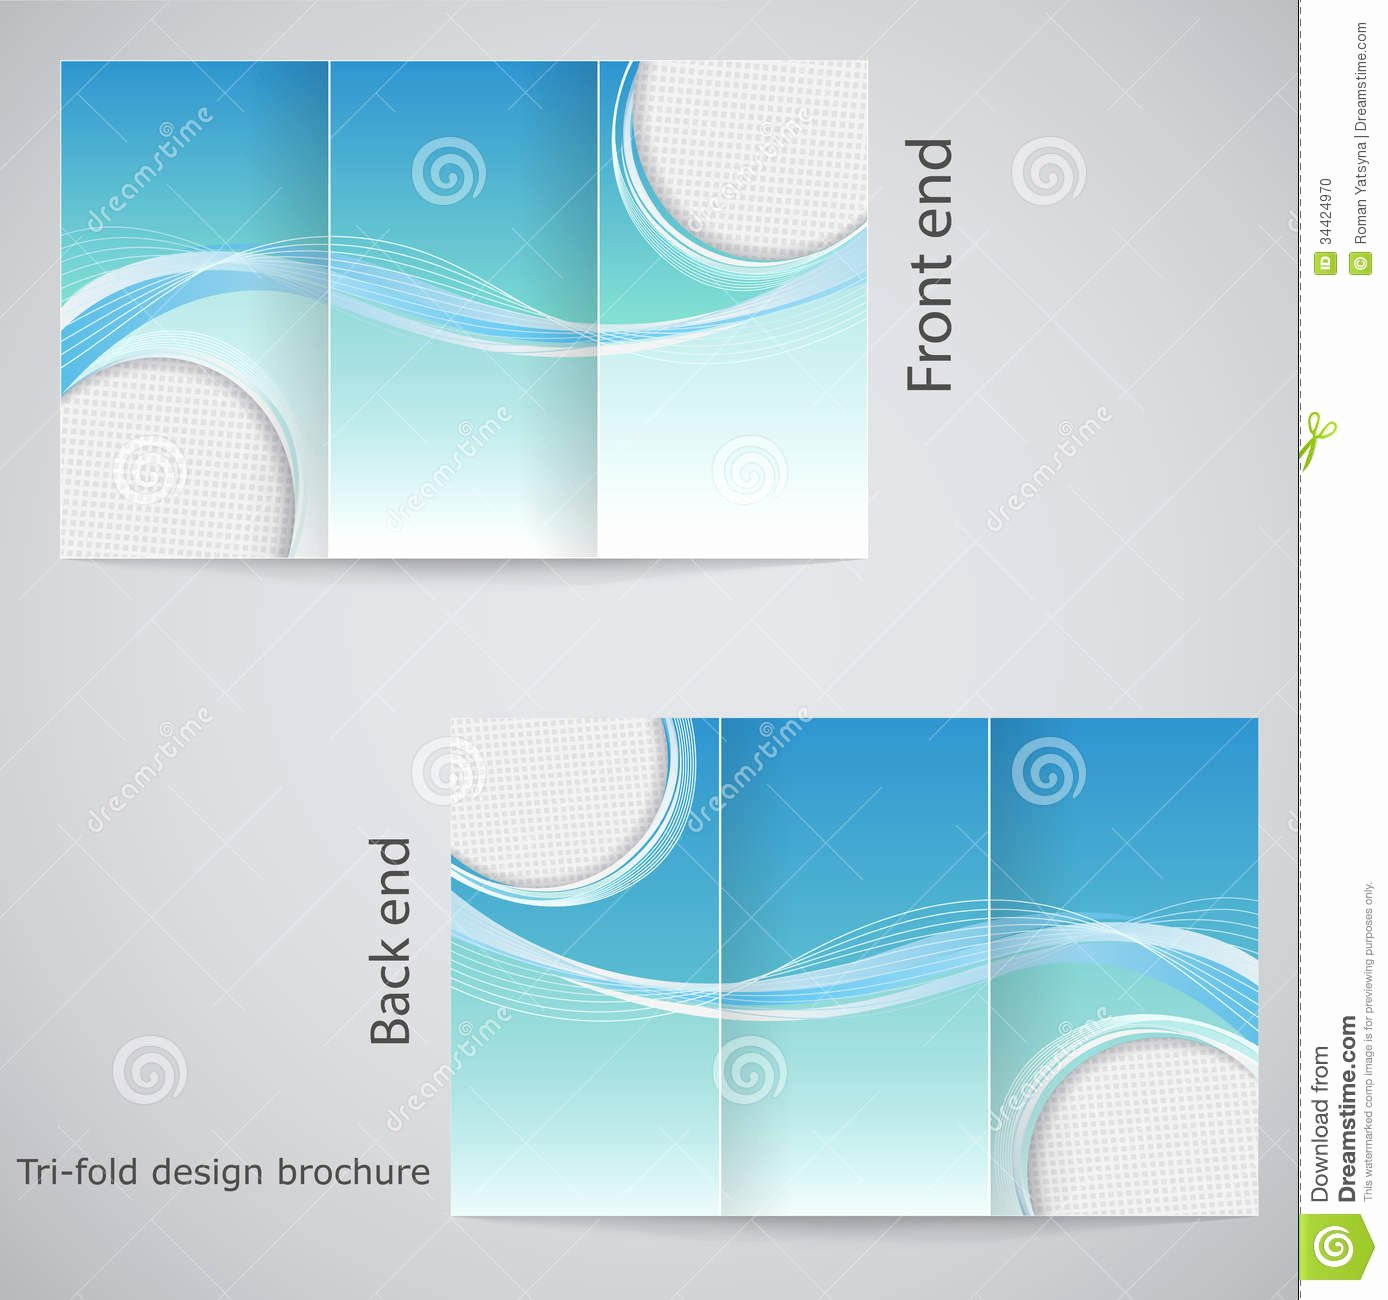 Best S Of 3 Fold Brochure Templates Flyer Free Tri